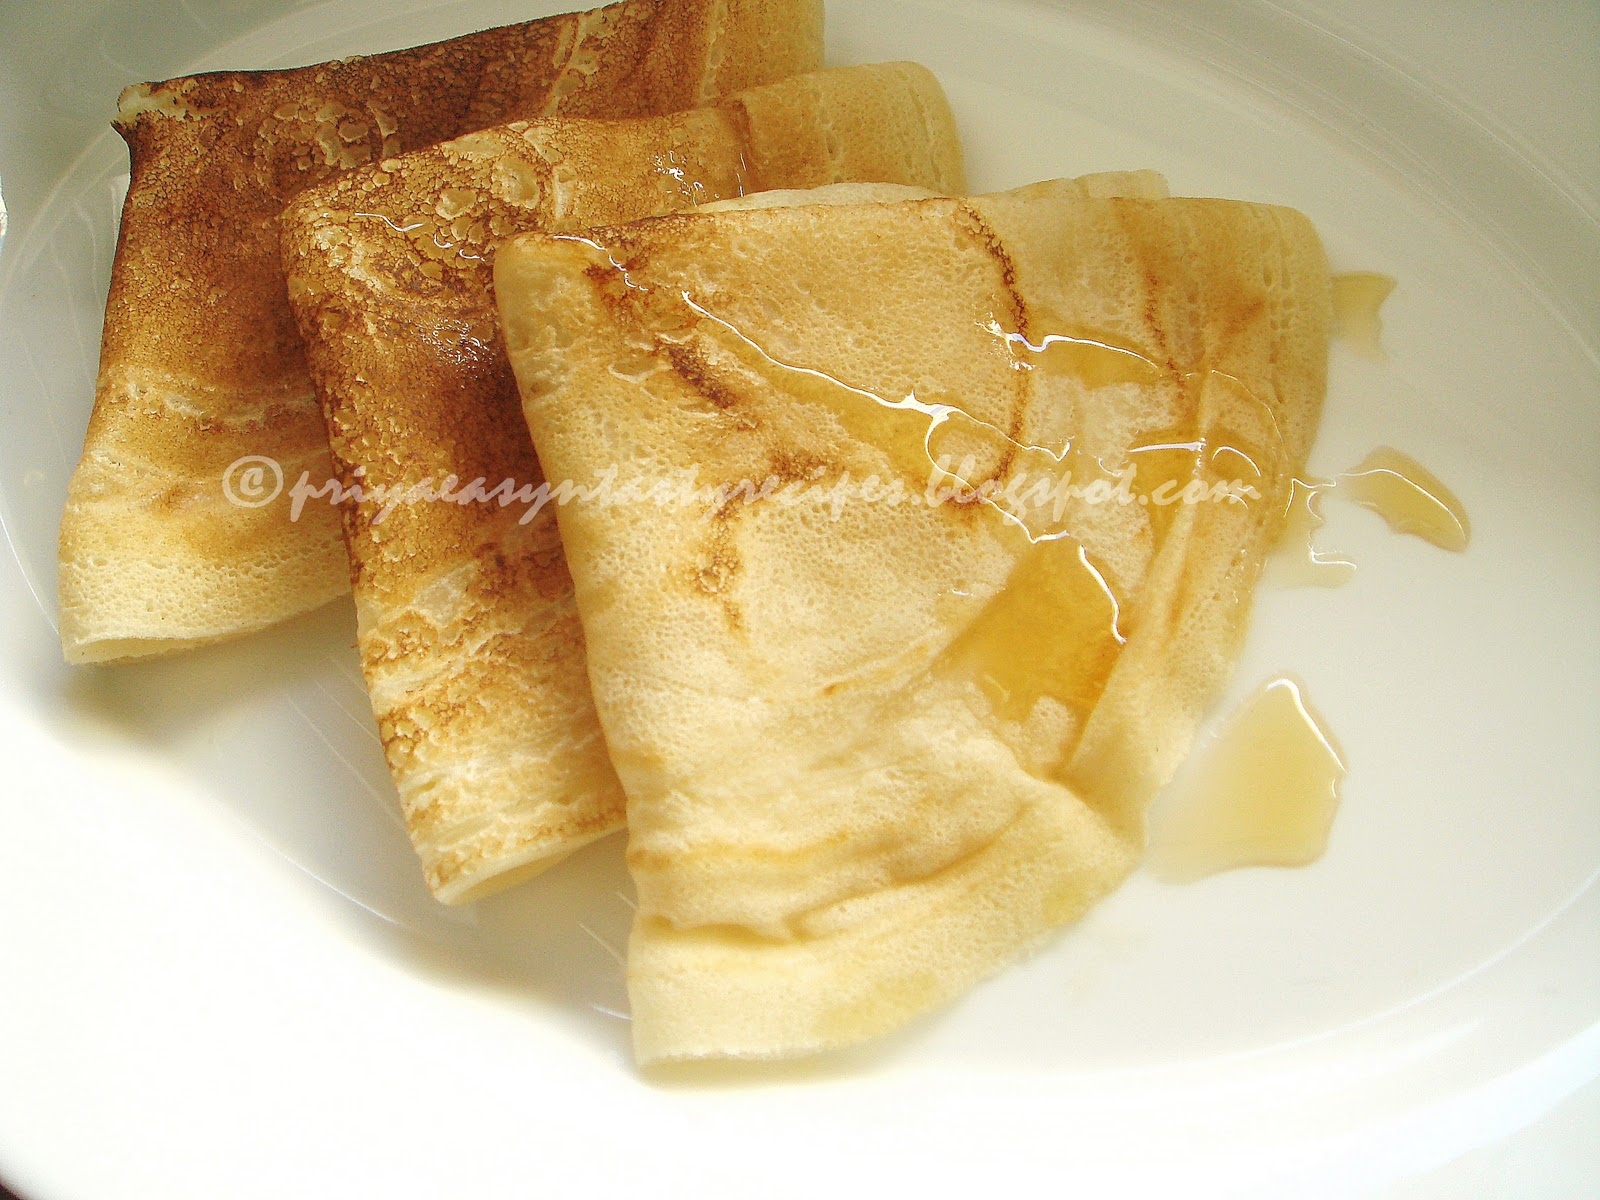 Anjera somalian pancake like bread recipes recipe am gonna prepare this bread whenever we feel like having quick dishes 2cups self raising flour ccuart Images